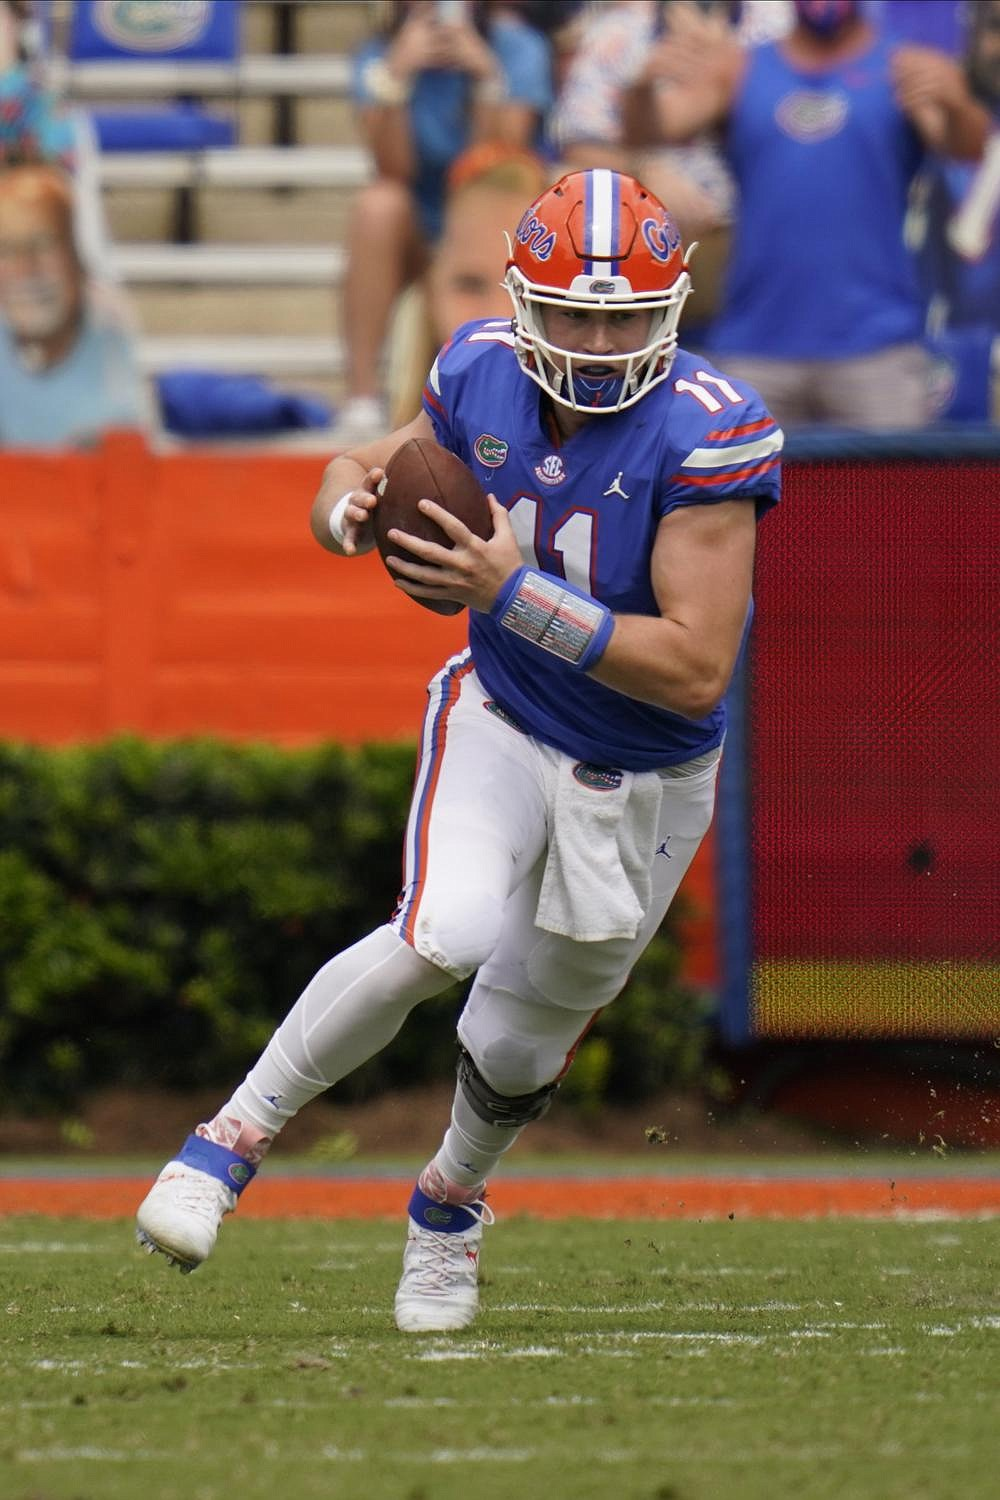 It's early in the season, but Kyle Trask's hot start has him high on most Heisman Trophy lists. He has a 71.8% completion rate (51 of 71) for 684 yards and 10 touchdowns with 1 interception in victories over Ole Miss and South Carolina. (AP/John Raoux)